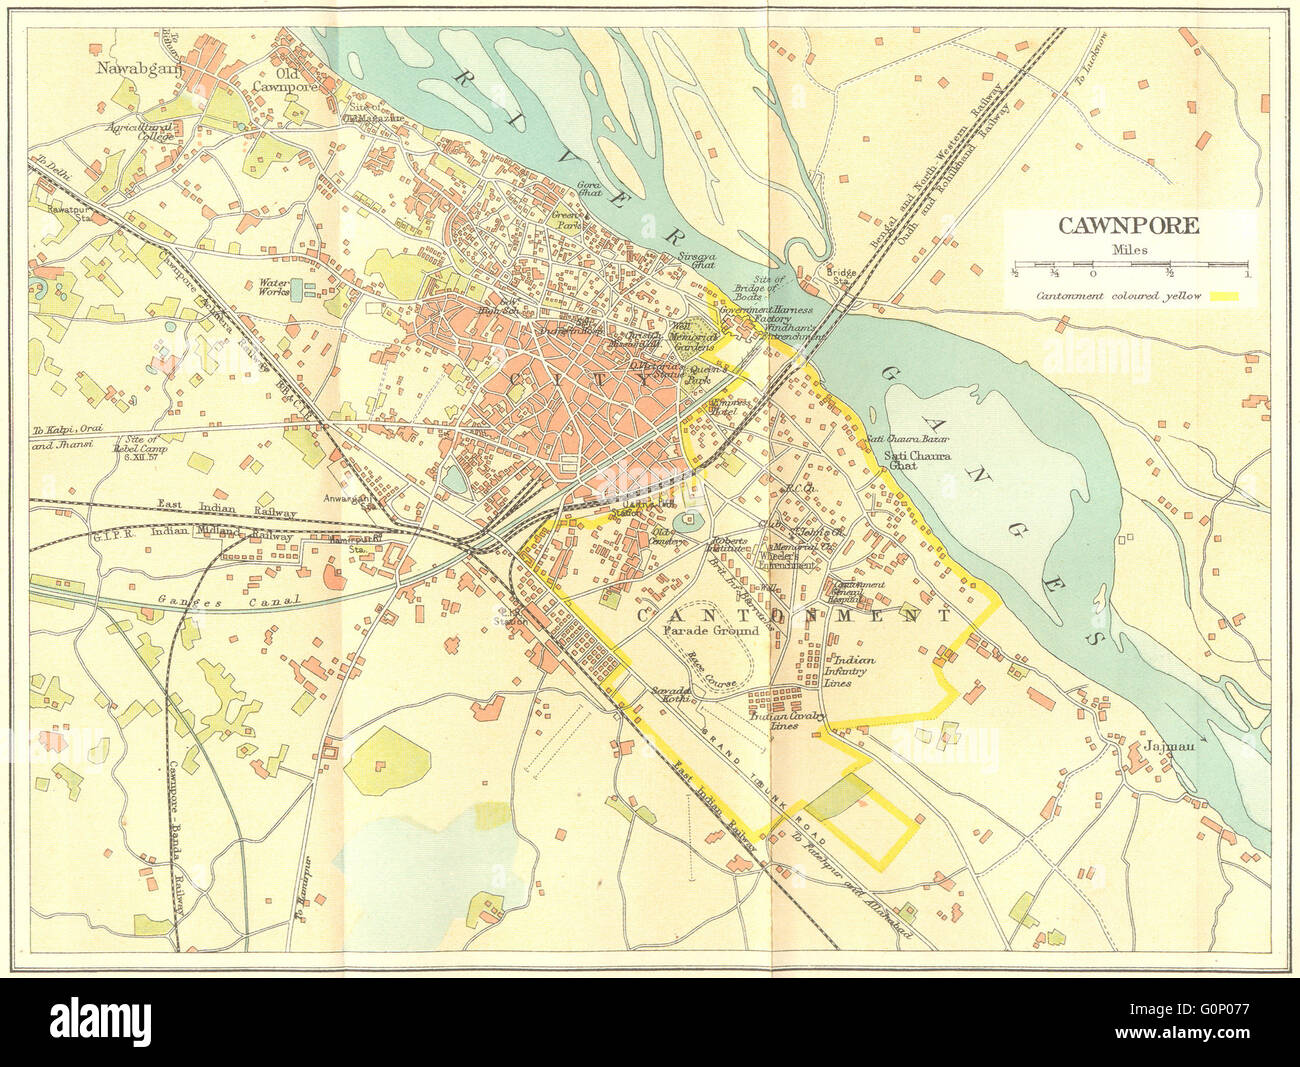 British India Cawnpore Kanpur City Plan Showing Cantonment 1924